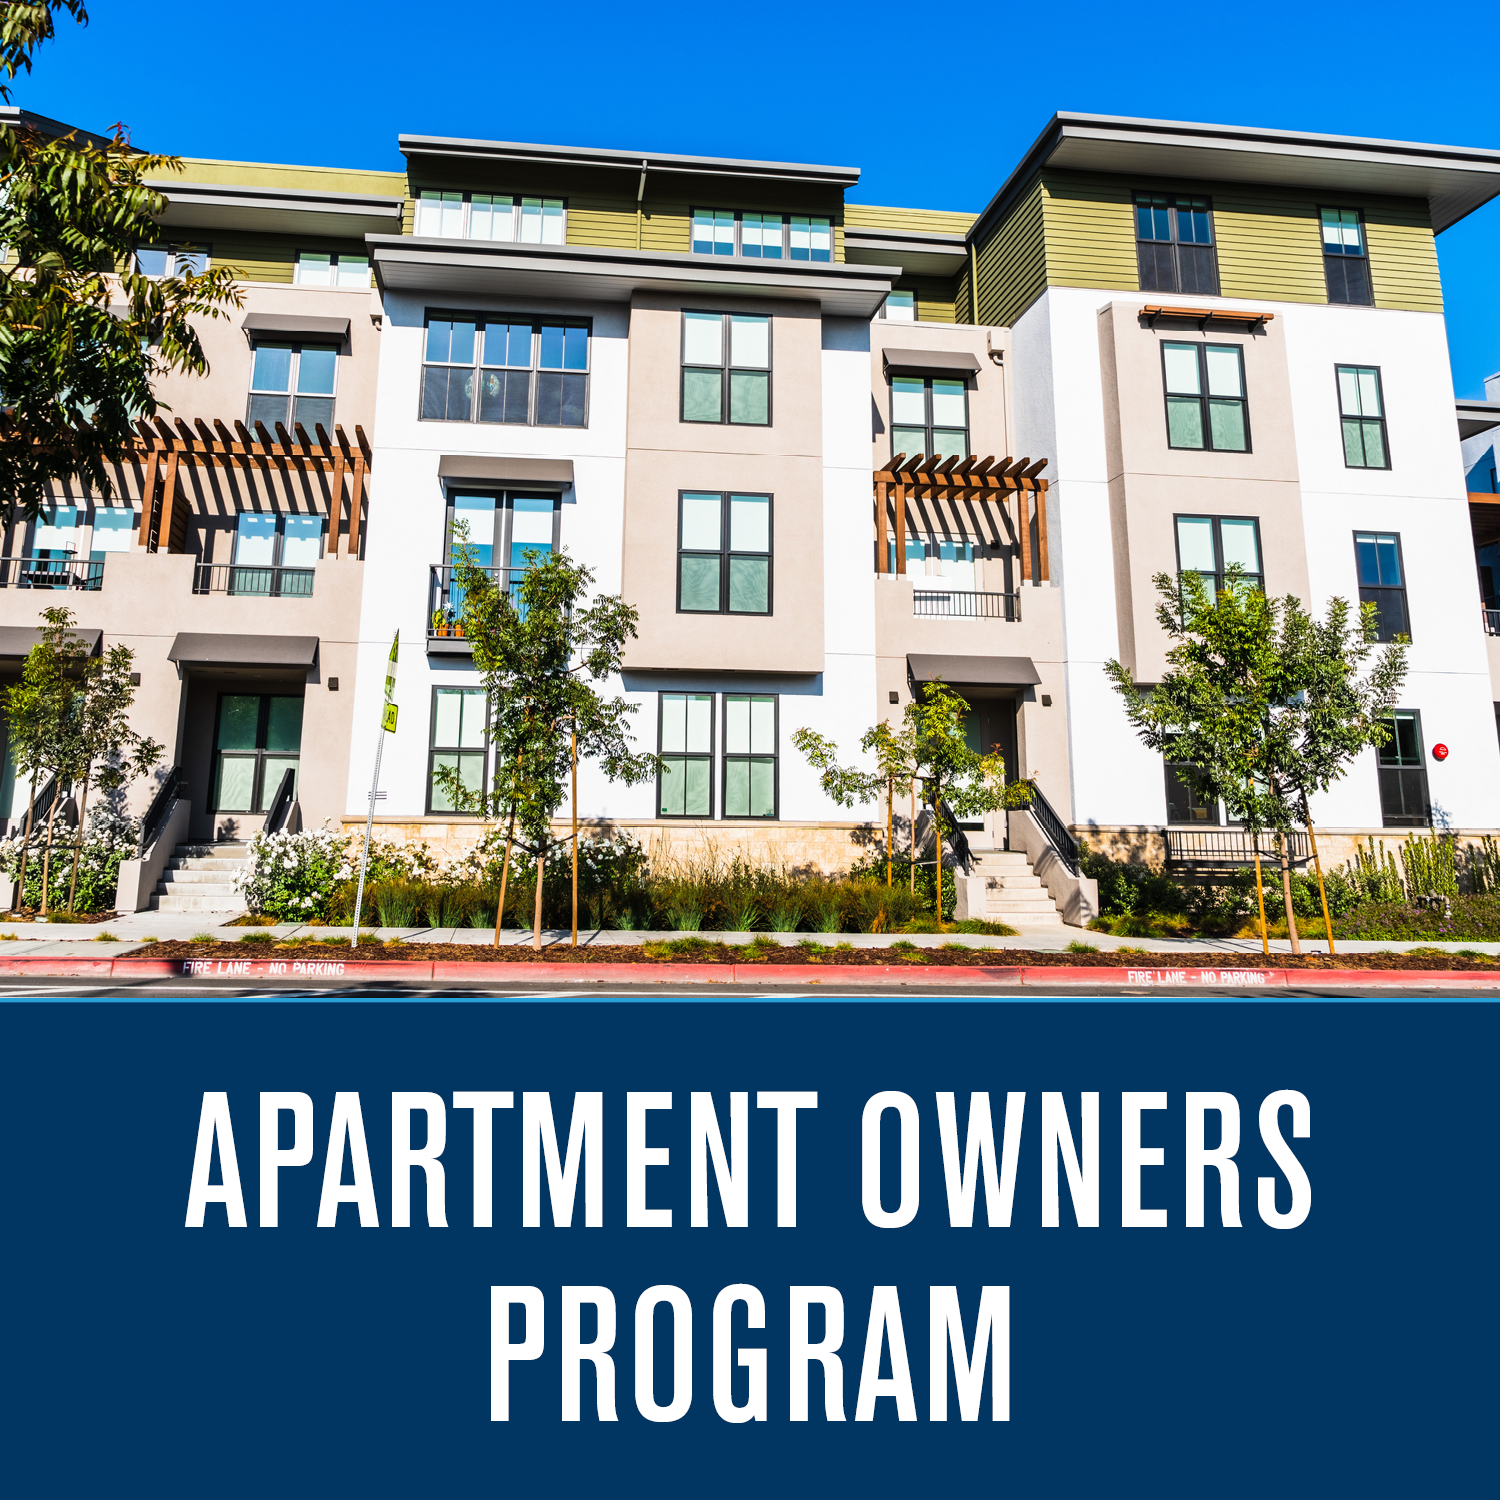 Apartment Owners Program